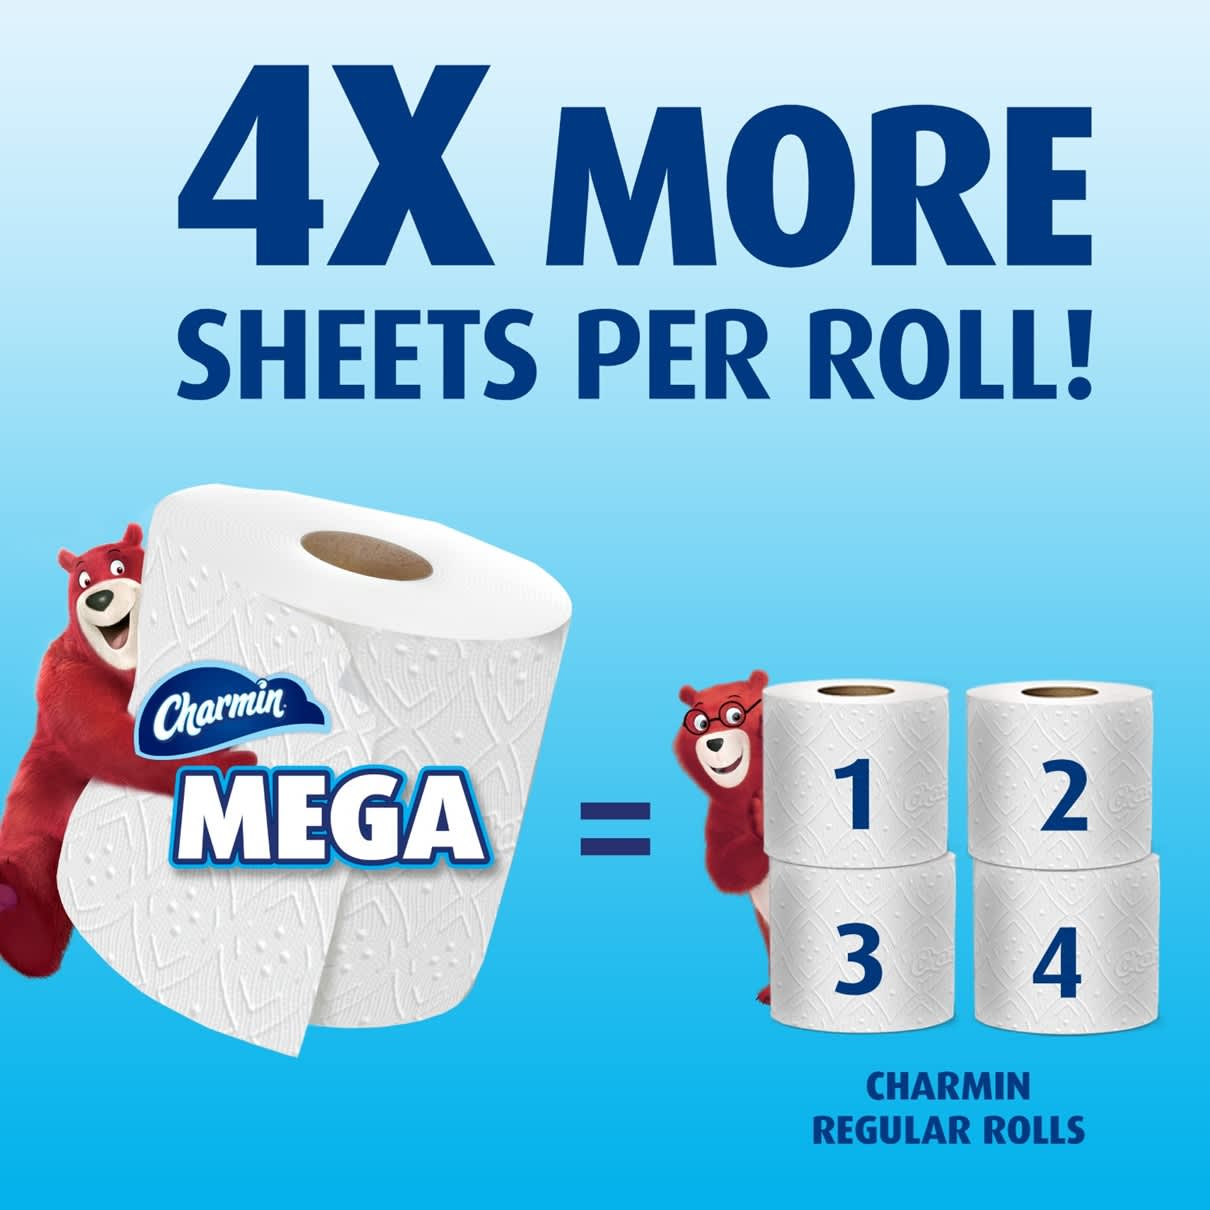 Get 4X more sheets per roll with ultra strong mega roll